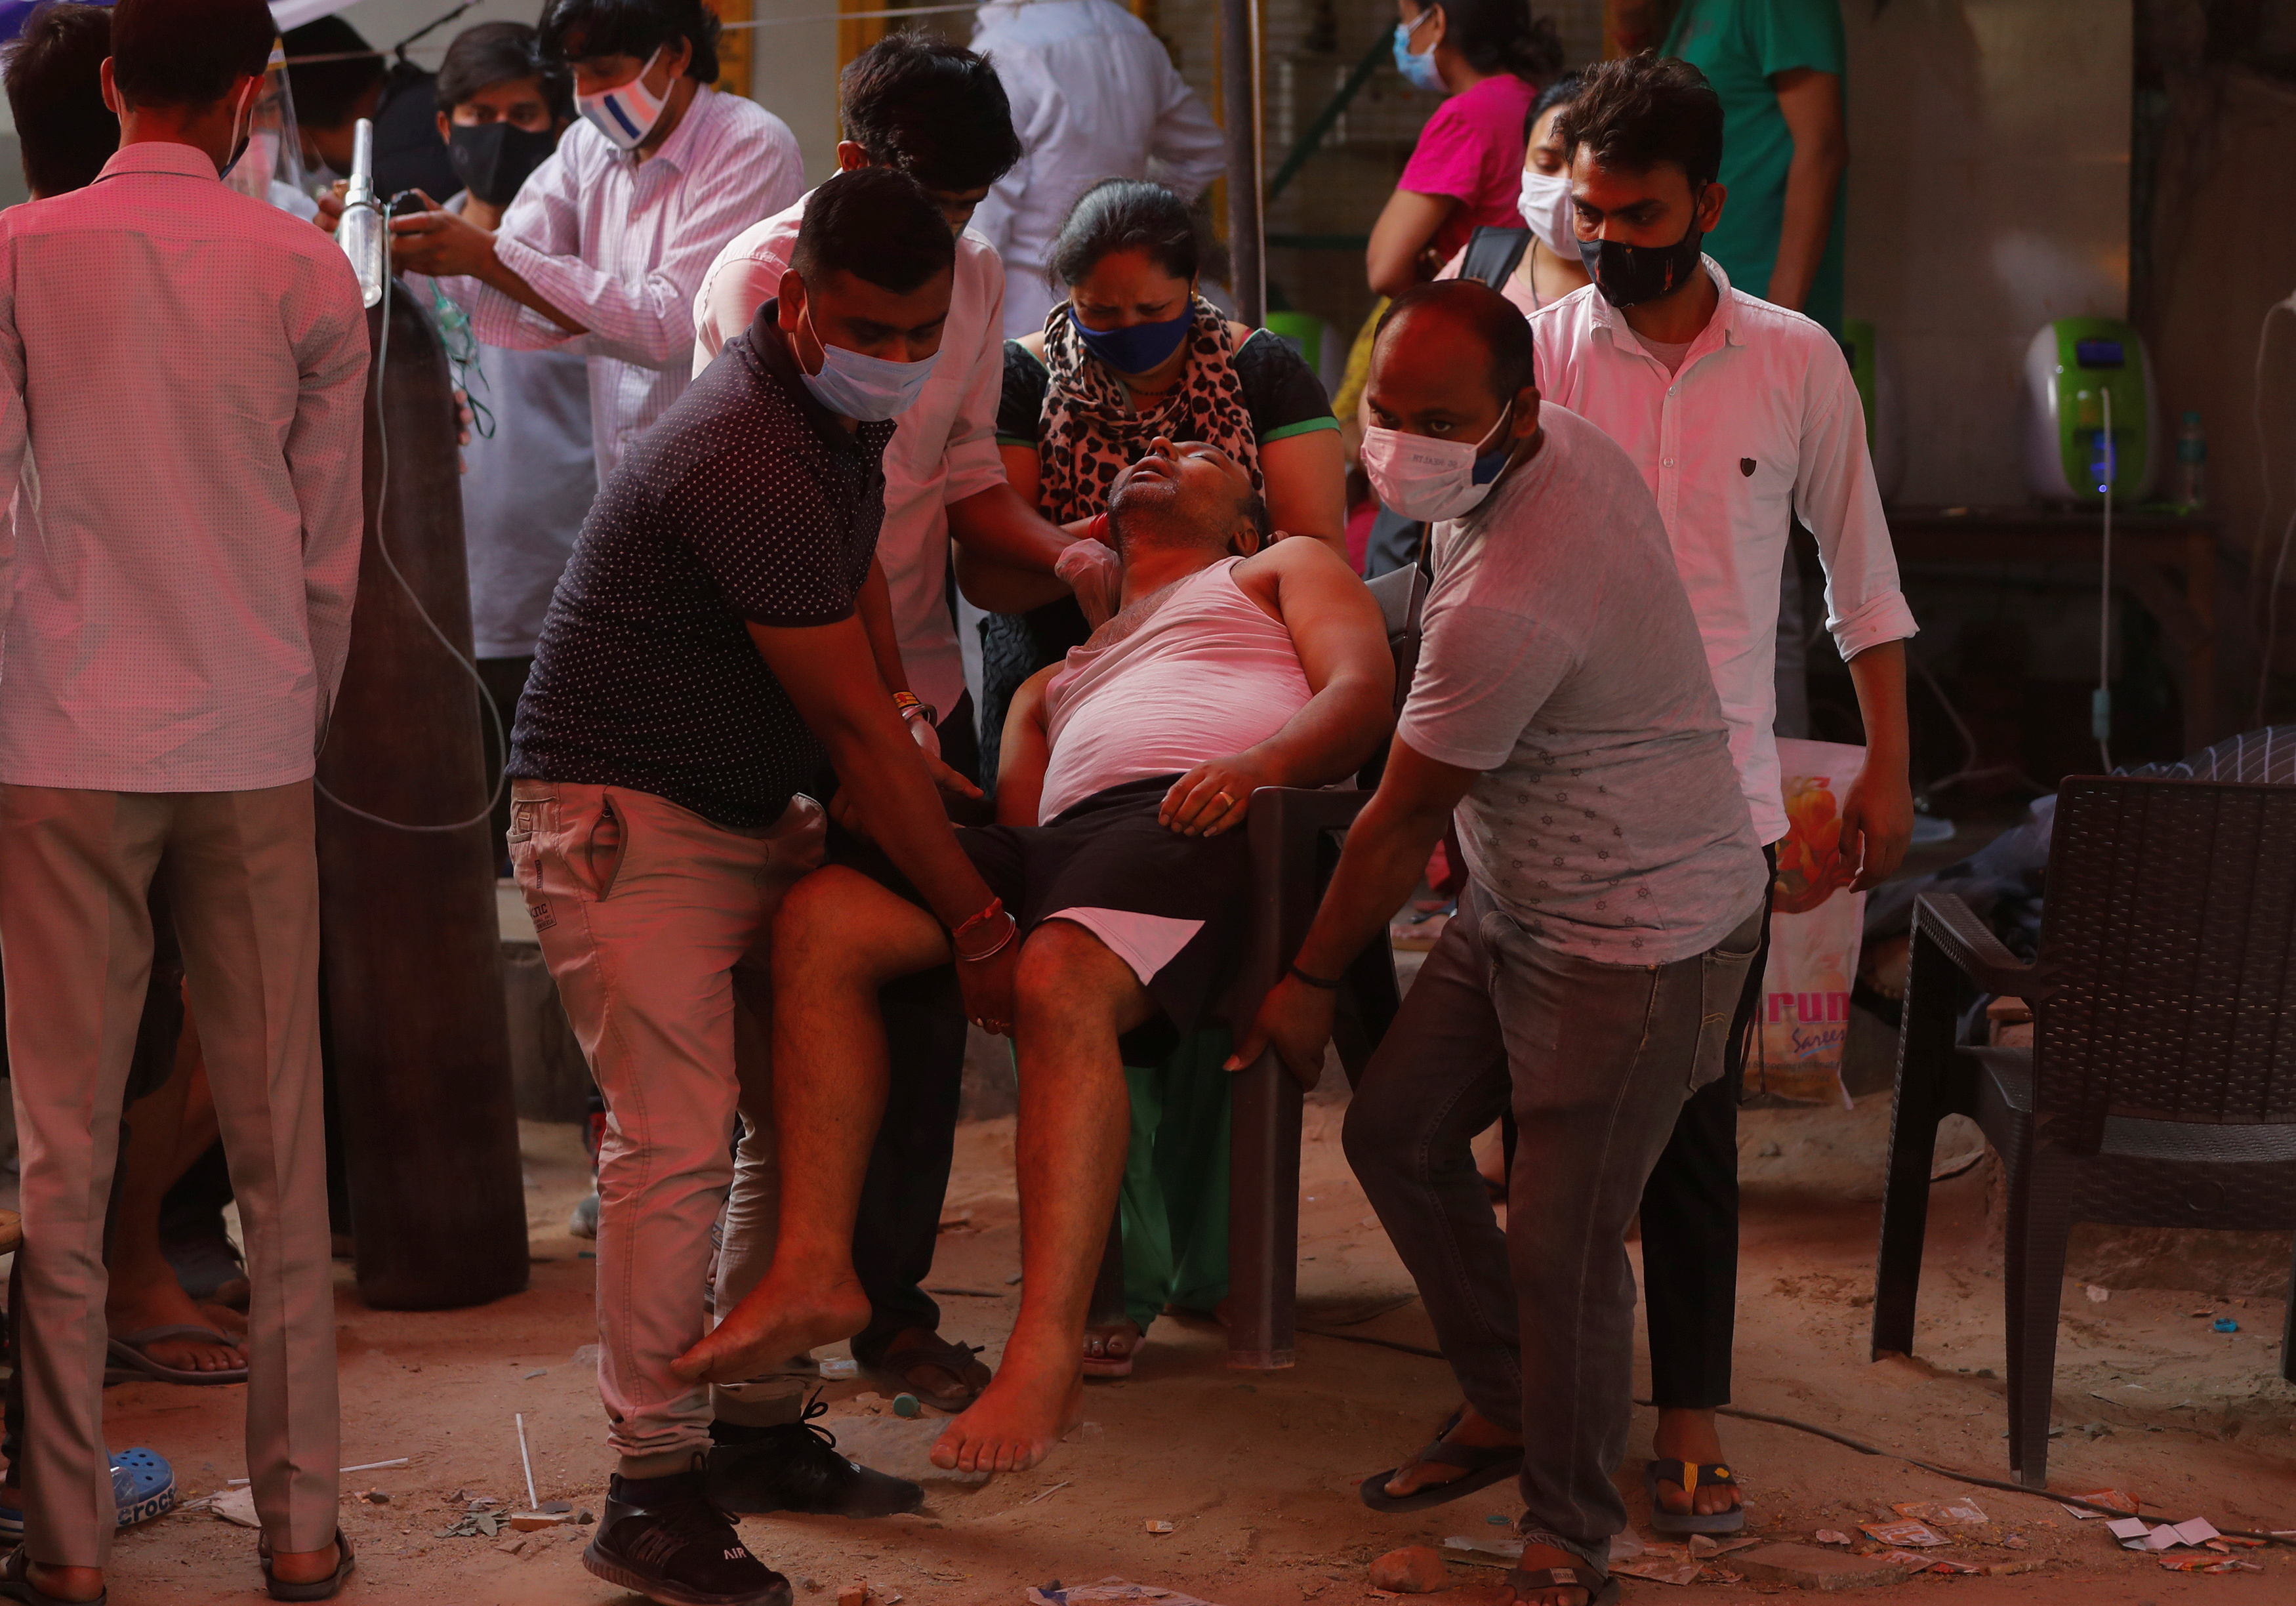 People carry the father of Manisha Bashu towards an ambulance, after he felt unconsicous while receiving oxygen support for free at a Gurudwara (Sikh temple), amidst the spread of coronavirus disease (COVID-19), in Ghaziabad, India, April 30, 2021. REUTERS/Adnan Abidi